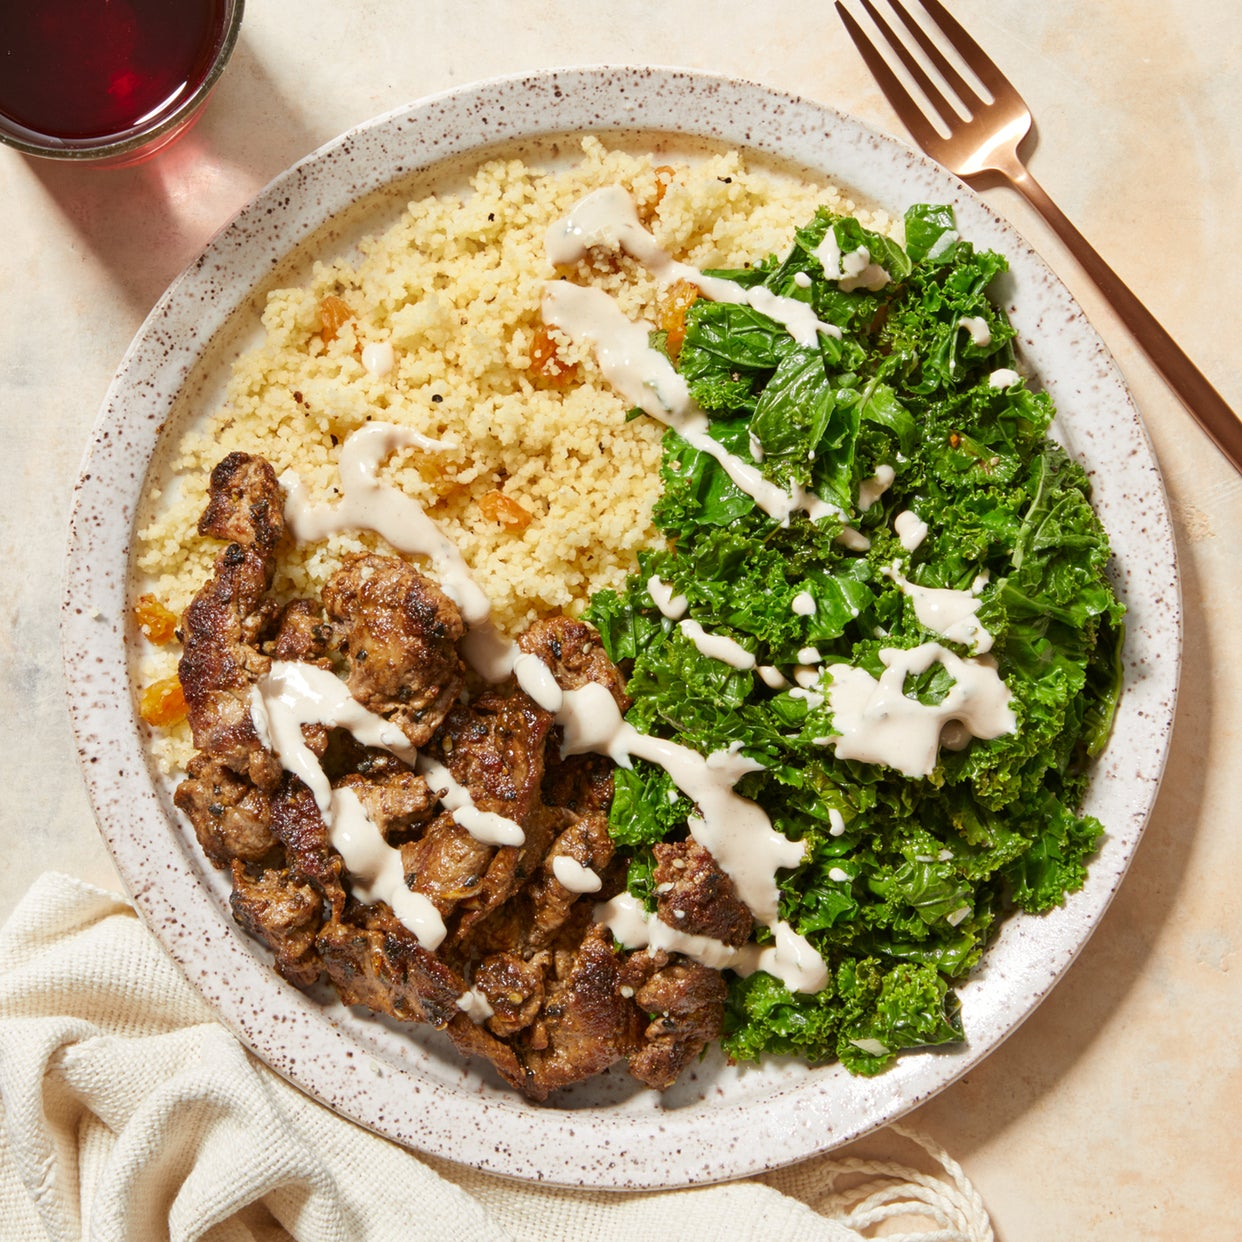 Dukkah-Spiced Beef & Couscous with Kale & Tahini Dressing